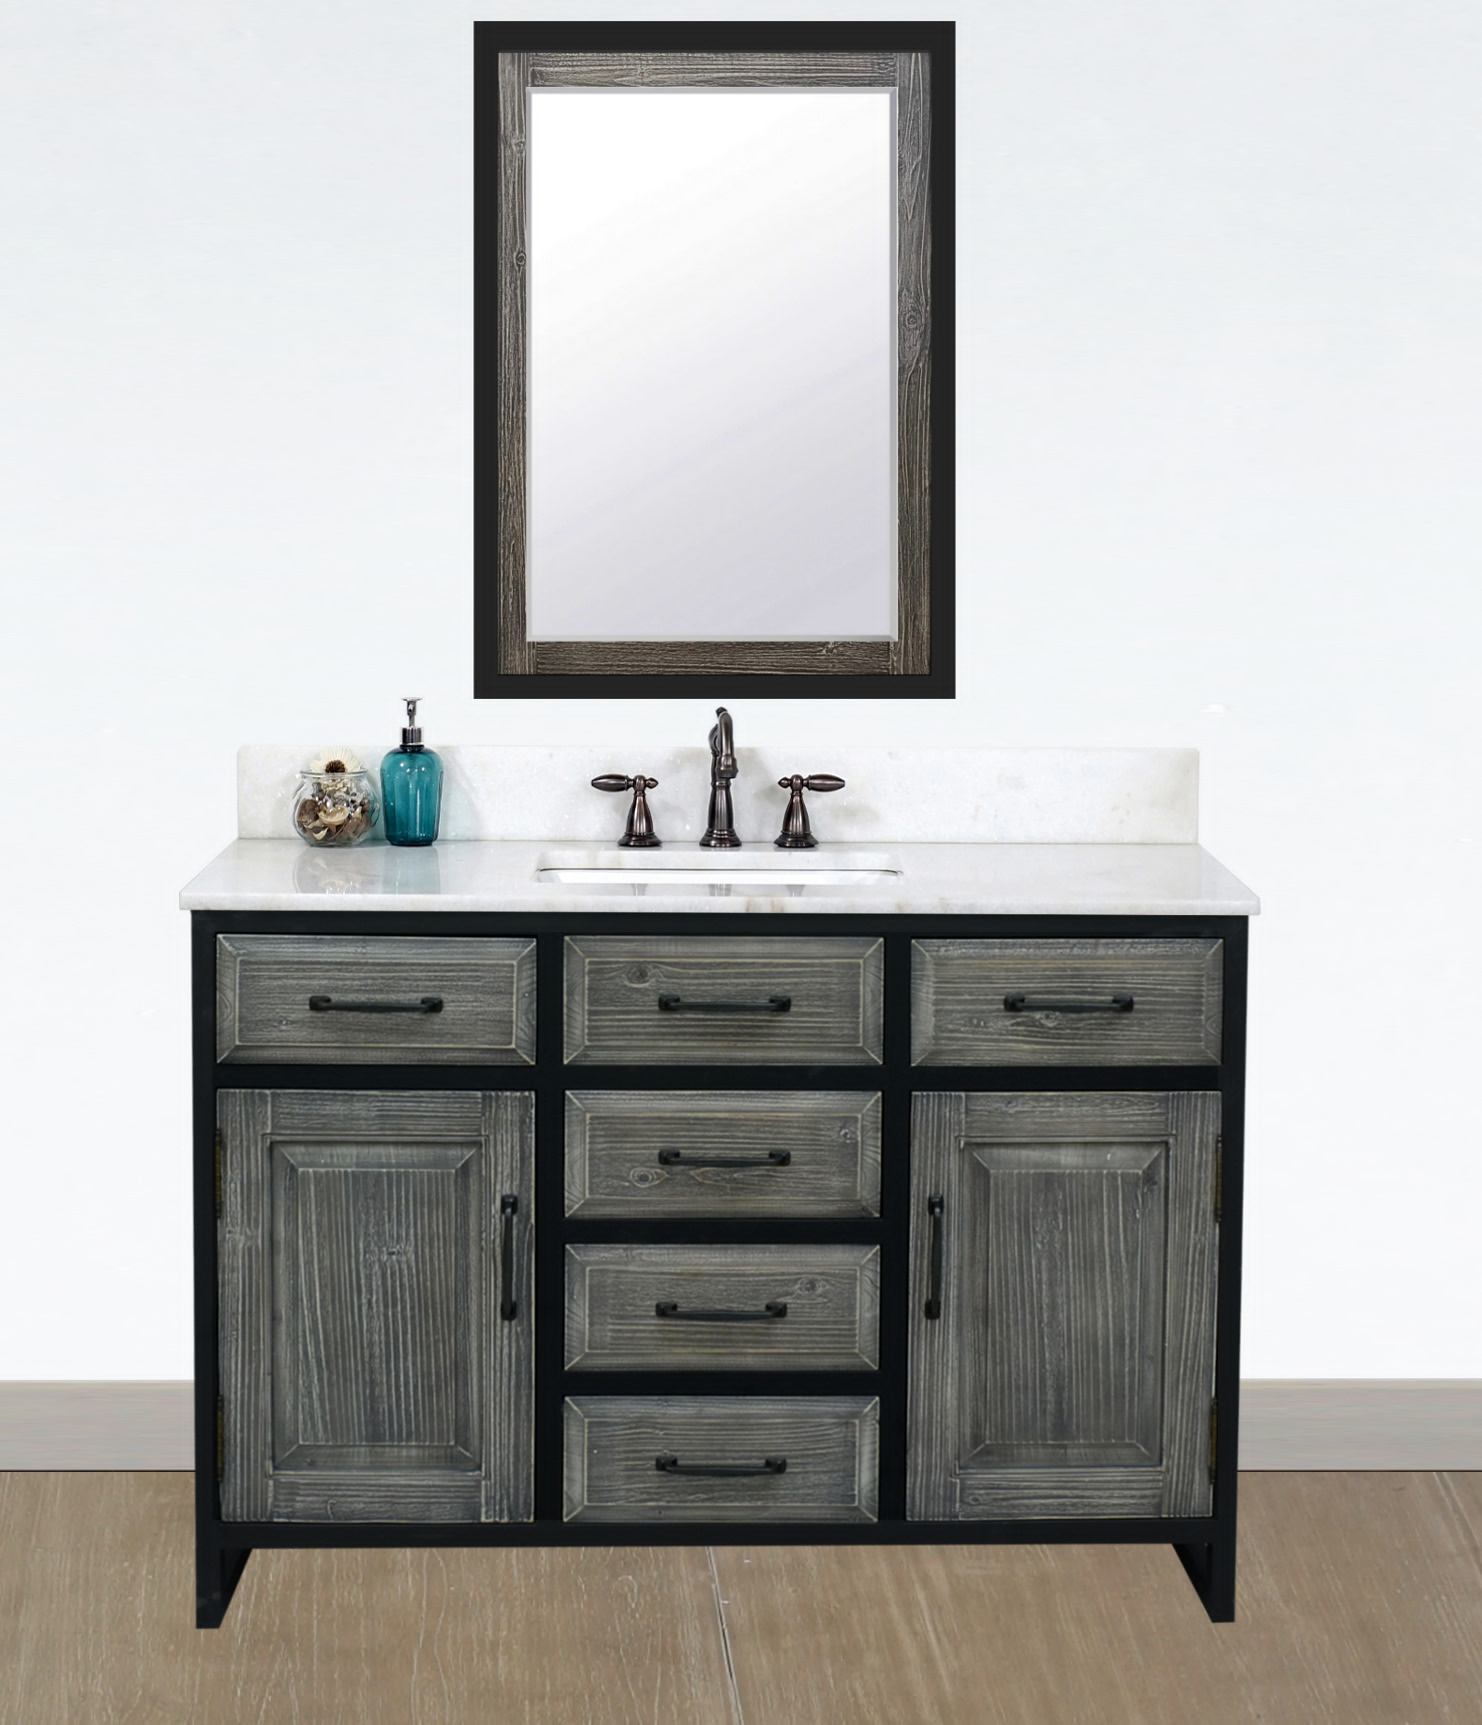 "48"" Rustic Solid Fir Single Sink with Iron Frame Vanity in Grey Driftwood - No Faucet with Countertop Options"